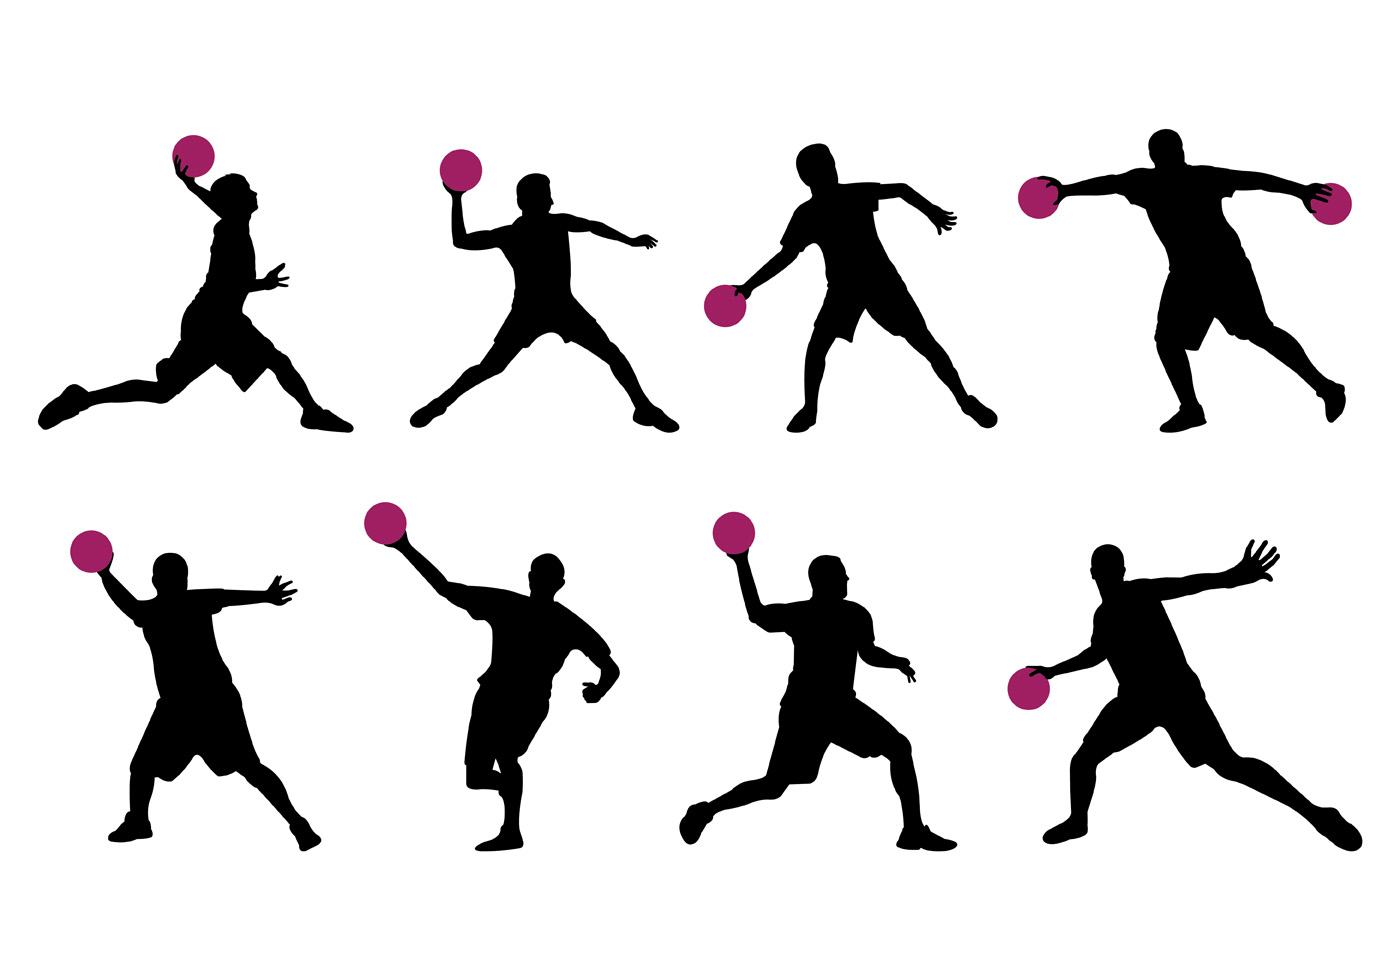 1400x980 Dodge Ball Free Vector Art